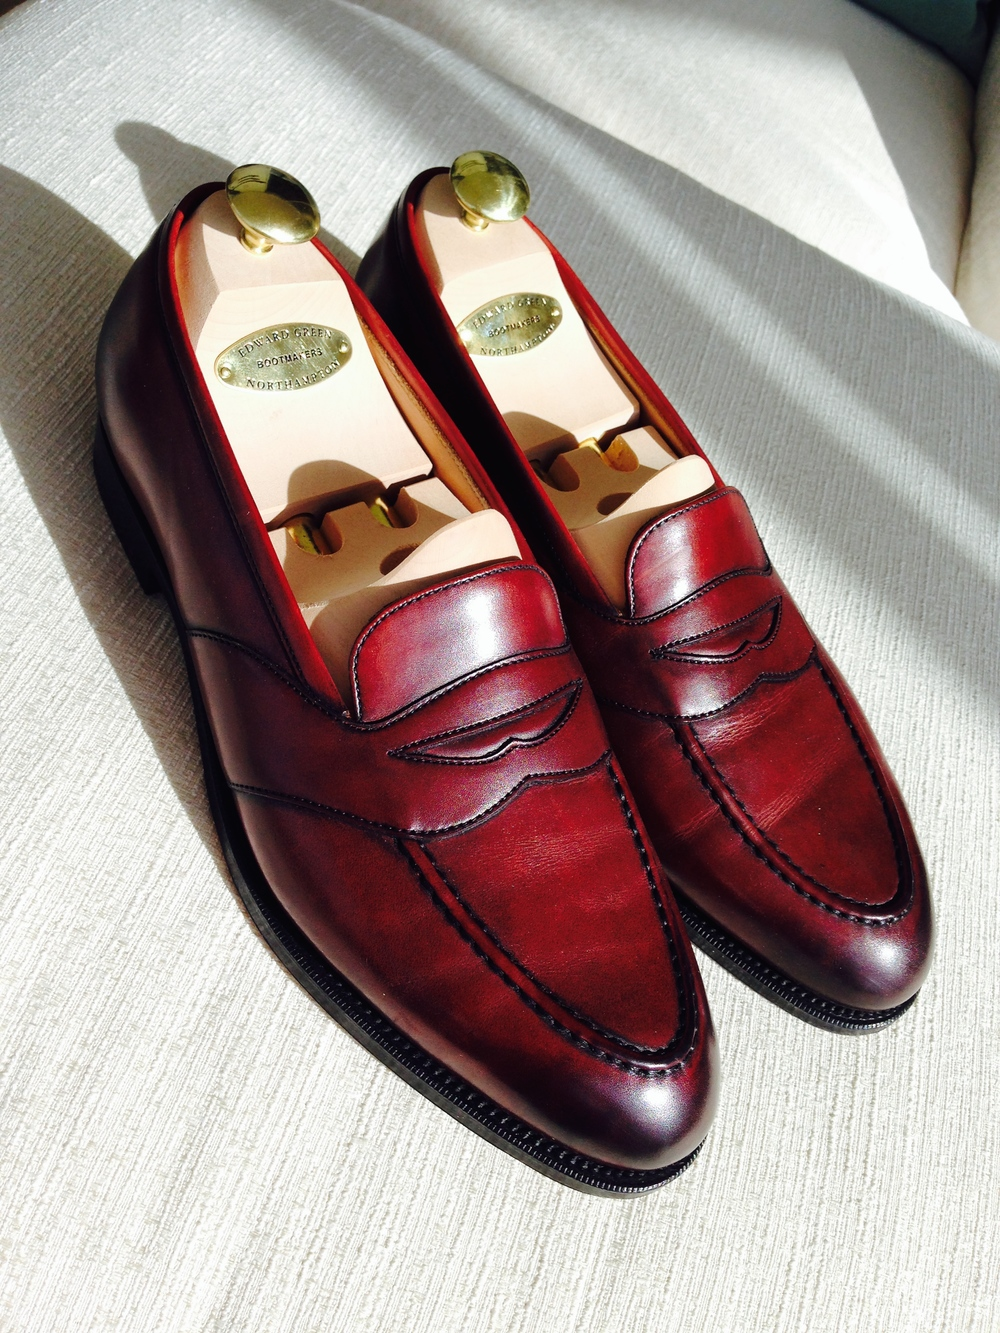 In direct sunlight, these full-straps lean more Beaujolais than Burgundy.  .